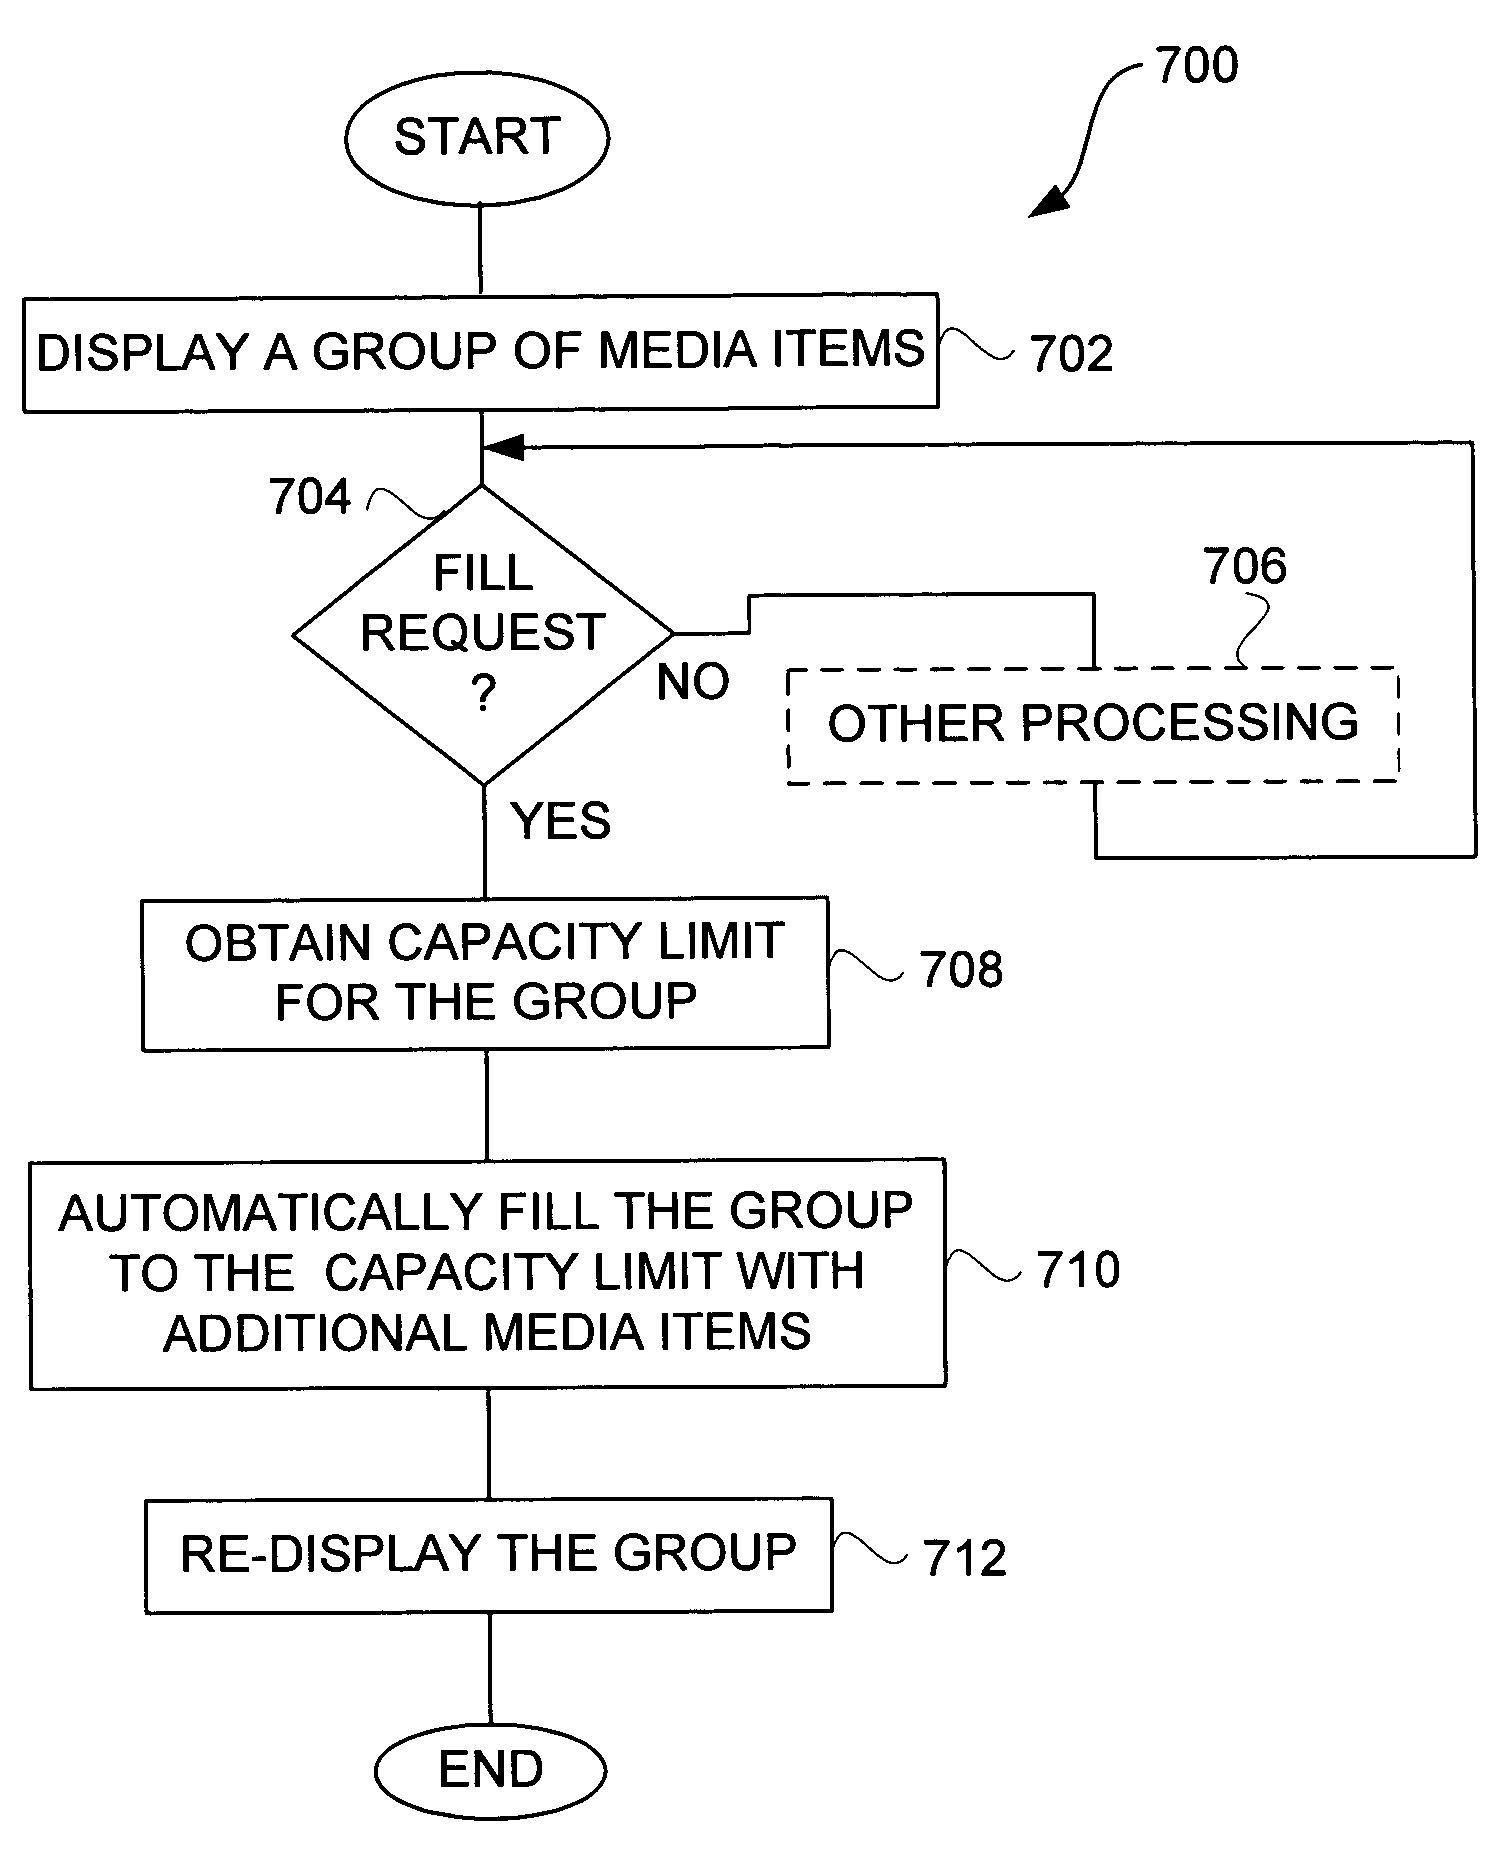 Apple  patent by Steve Jobs from 2011 for media management for groups of media items - US7958441